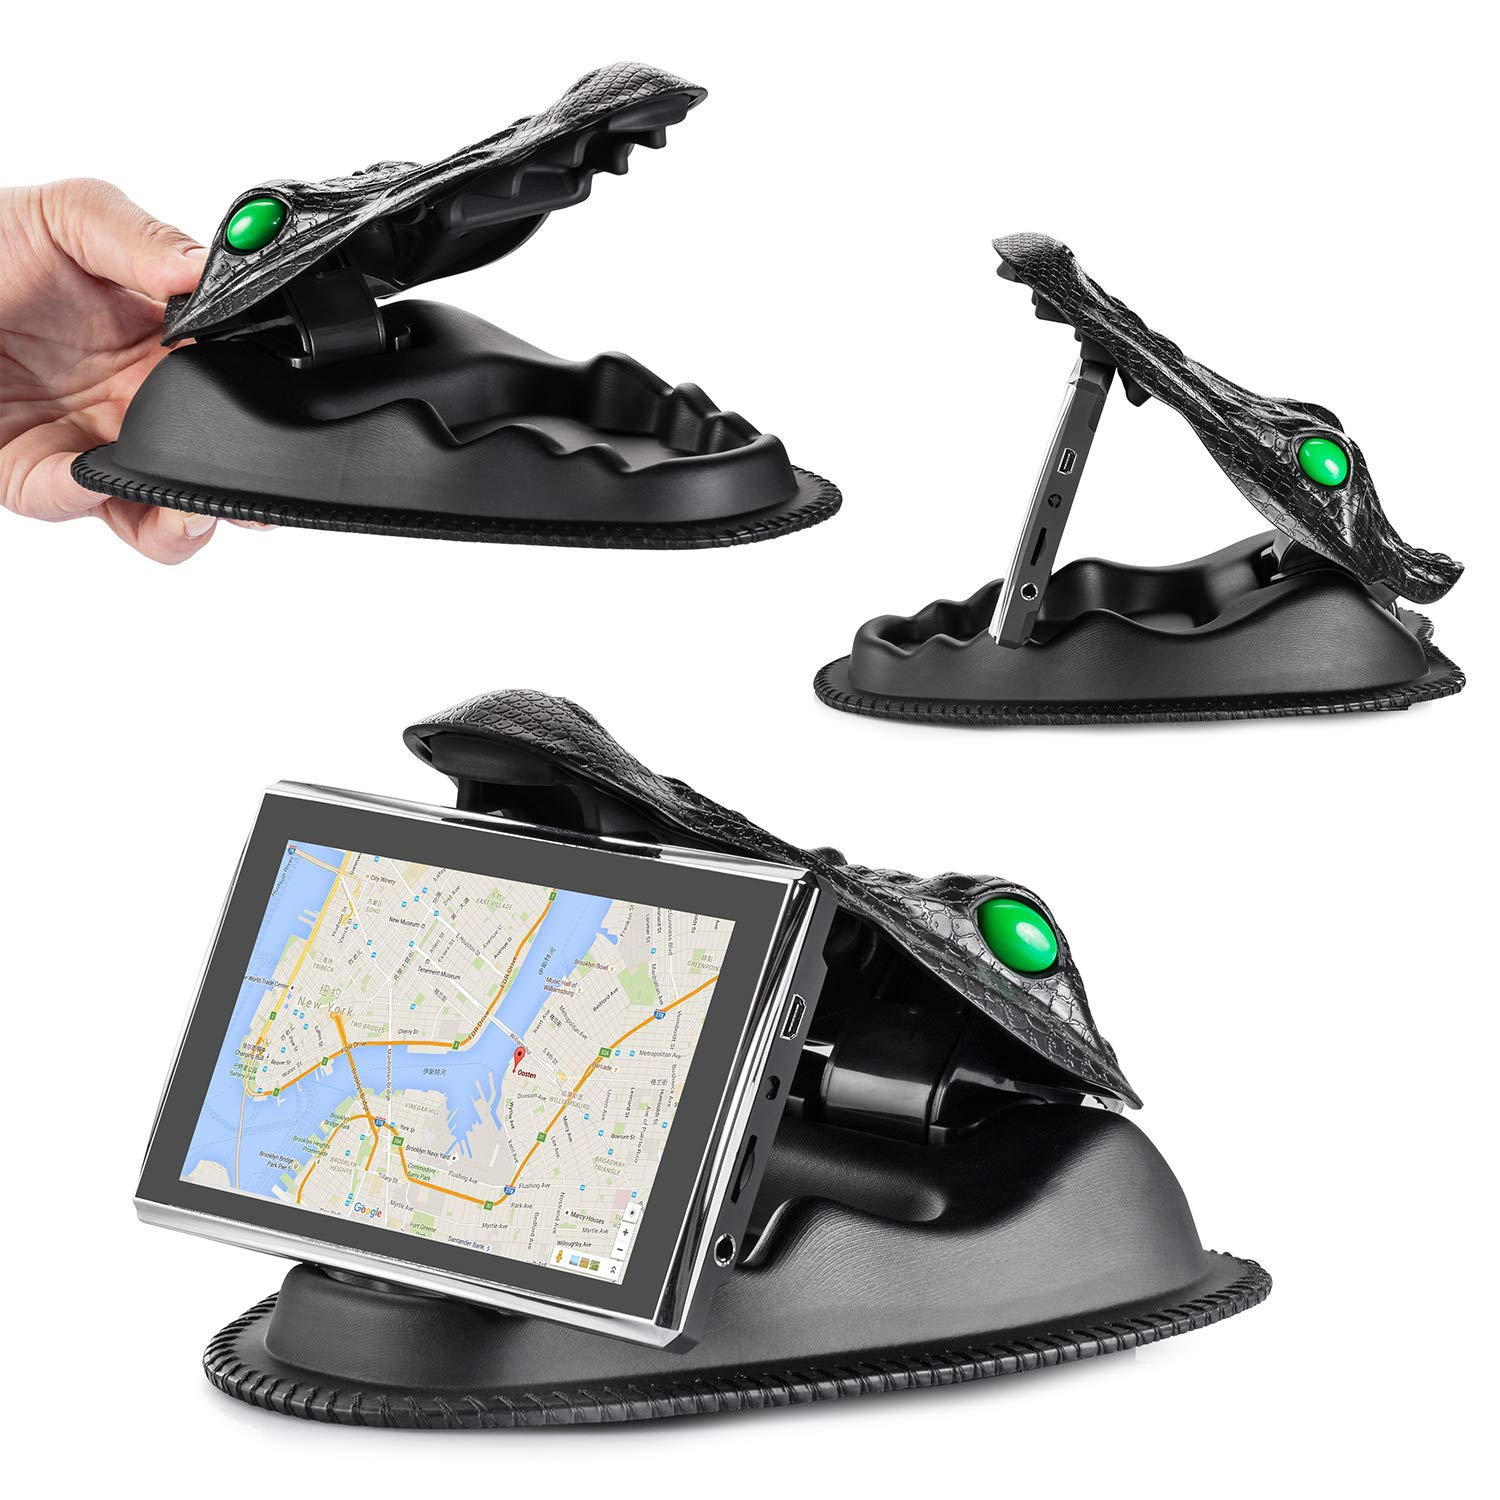 HapGo GPS Vehicle Mount,GPS Holder for Universal Smartphone Nonslip Dashboard for iphone6 /7/8 Series/X/Samsung S8/Note8 GPS Mount for Garmin, Nuvi, Tomtom, Via GO, Other Smartphones and 4-7inch GPS